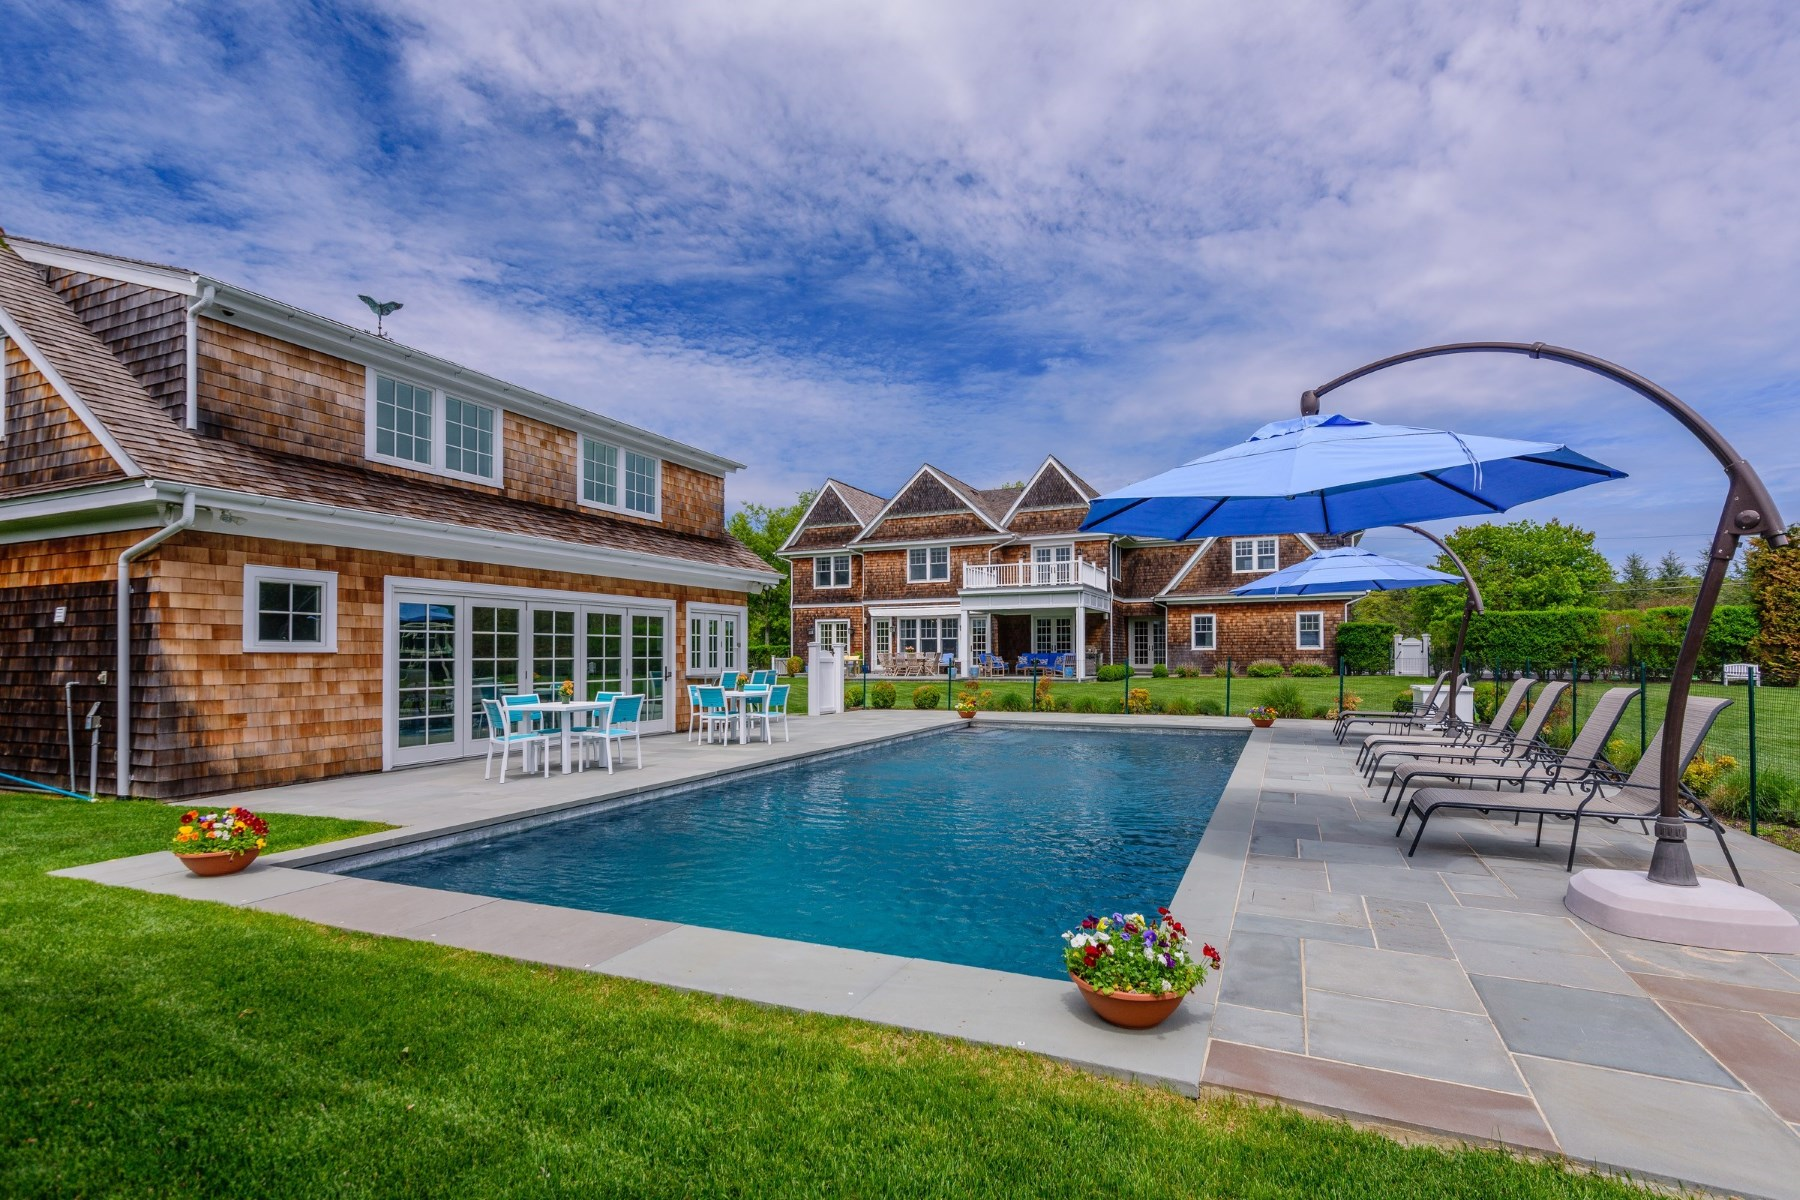 Tek Ailelik Ev için Satış at Resort Living with Sunset Views 590 Lumber Lane Bridgehampton North, Bridgehampton, New York 11932 Amerika Birleşik Devletleri